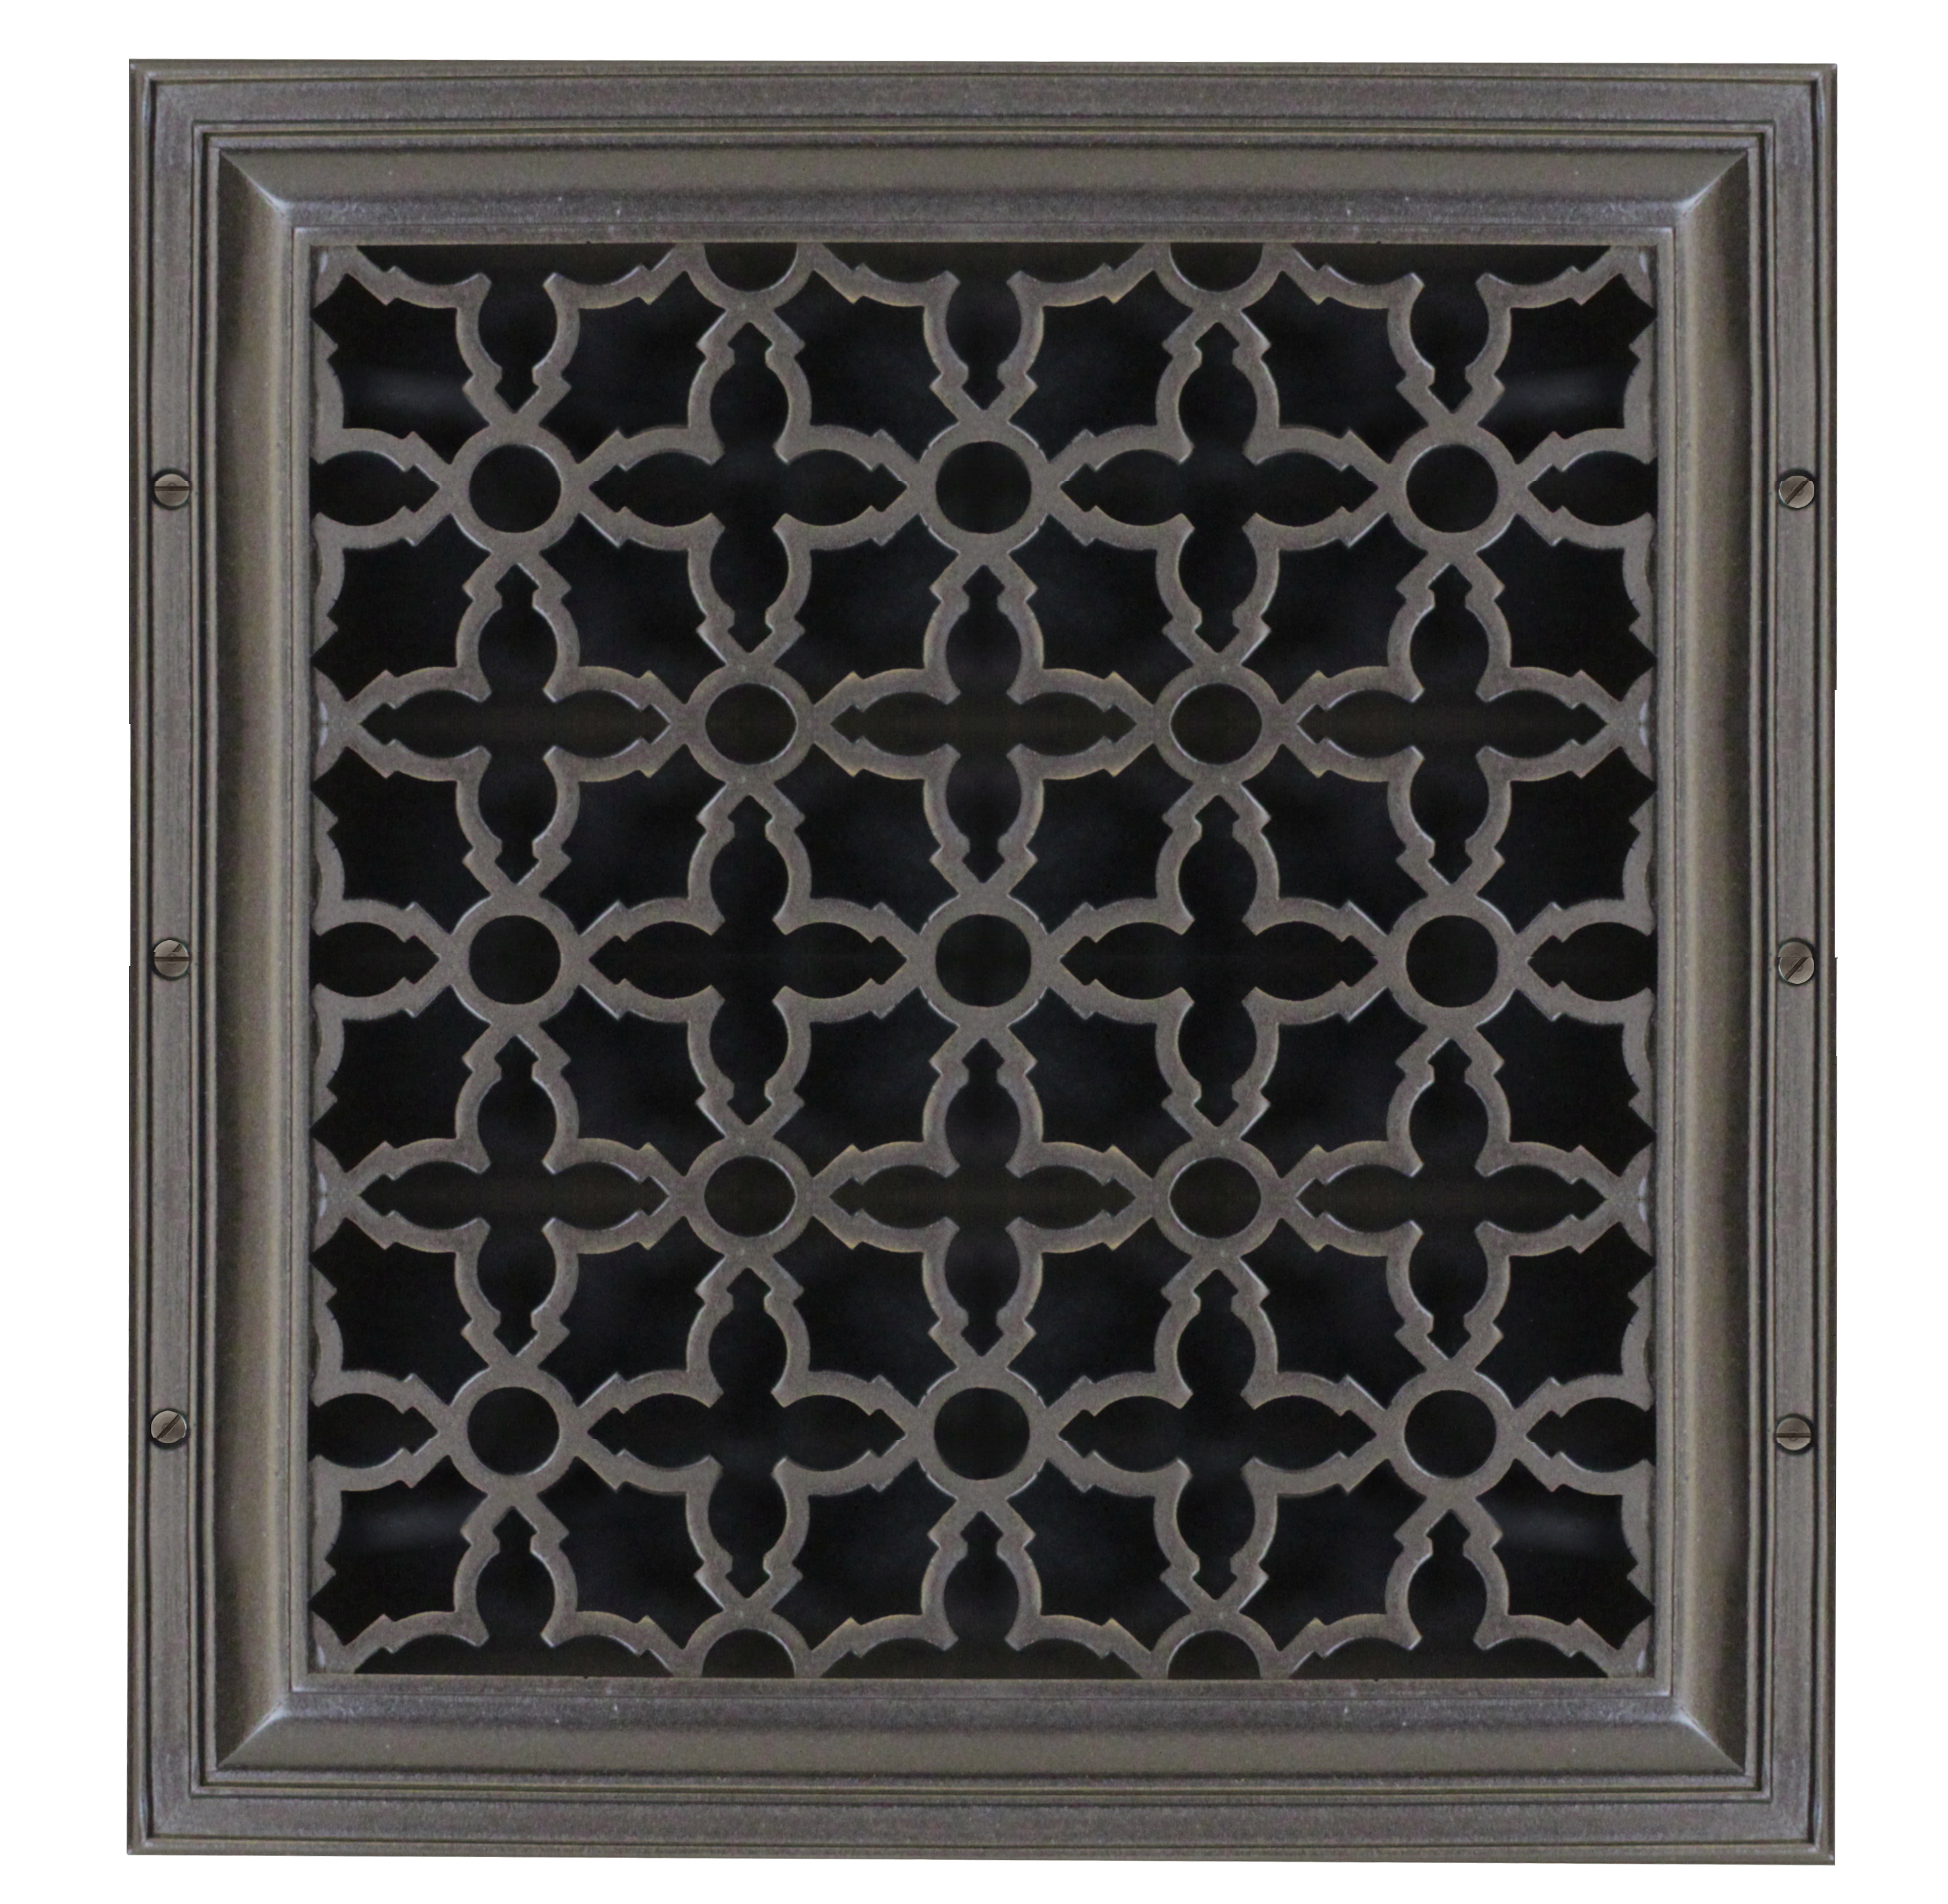 Heritage Decorative Vent Cover Vent covers, Air vent